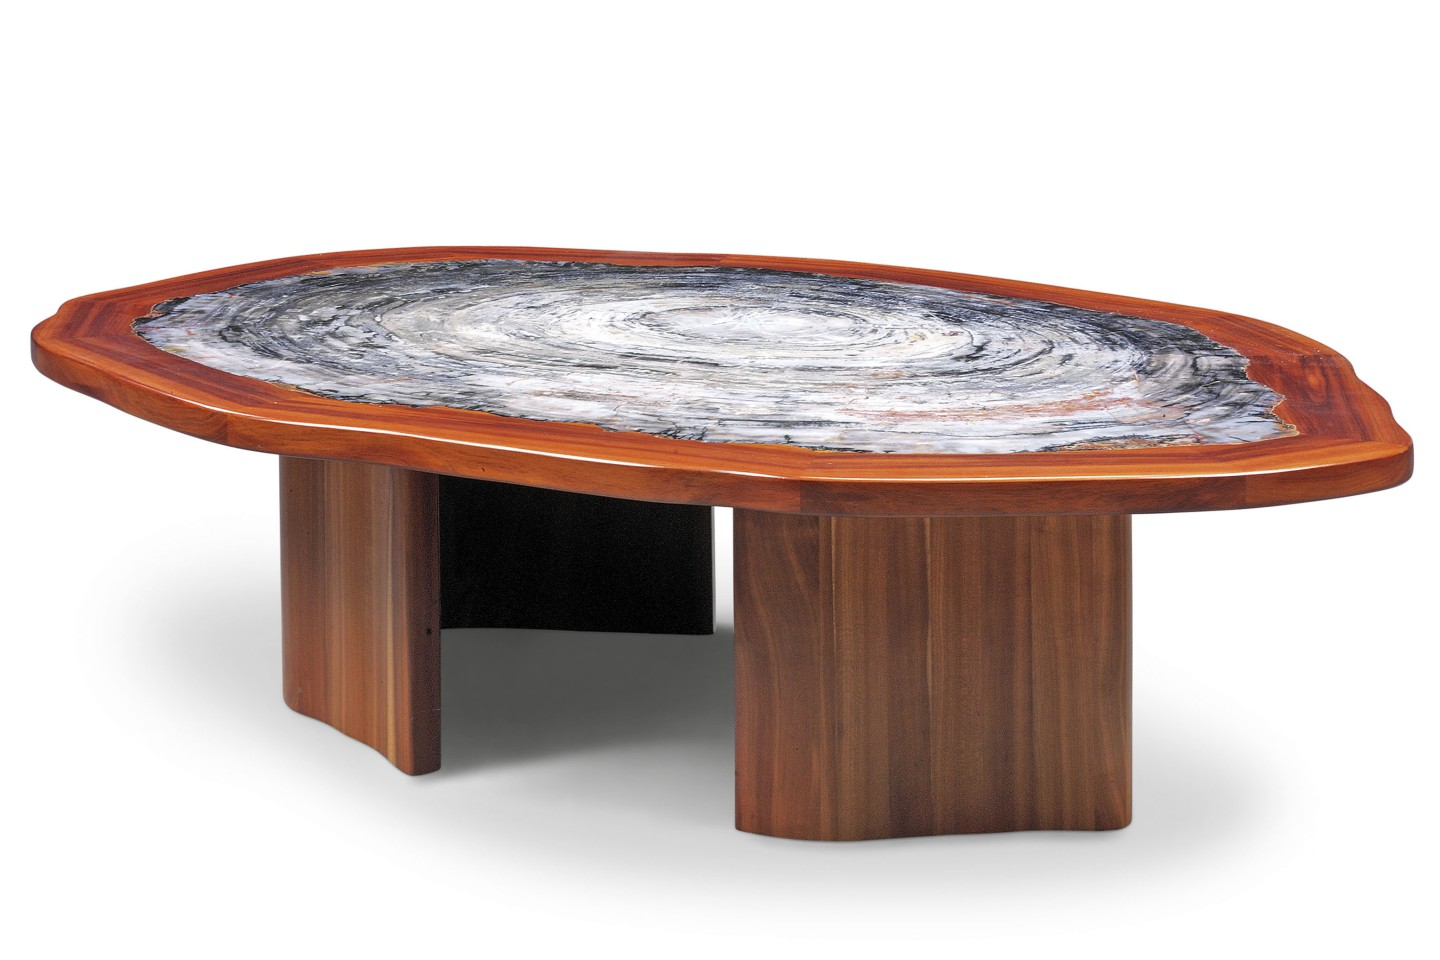 This magnificent table measures 571⁄2 x 411⁄2 x 153⁄4 inches (146 x 105 x 40 cm) and the tabletop is a thick slice of petrified Araucarioxylon arizonicum wood that is 225 million years old.